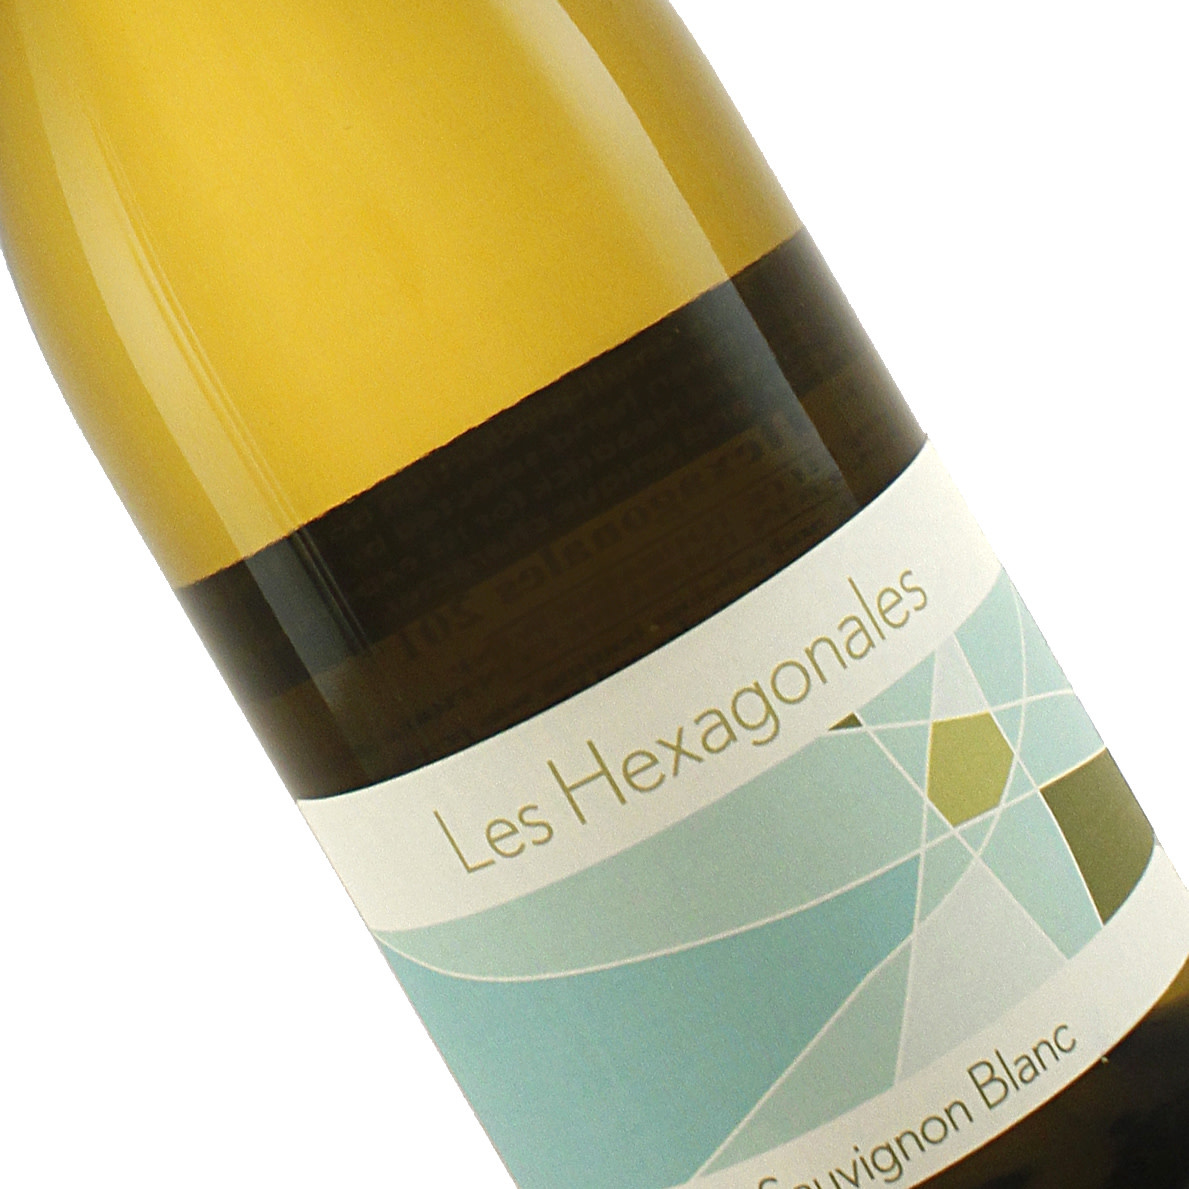 "Merieau 2017 Sauvignon Blanc ""Hexagonales"" Touraine, Loire Valley"